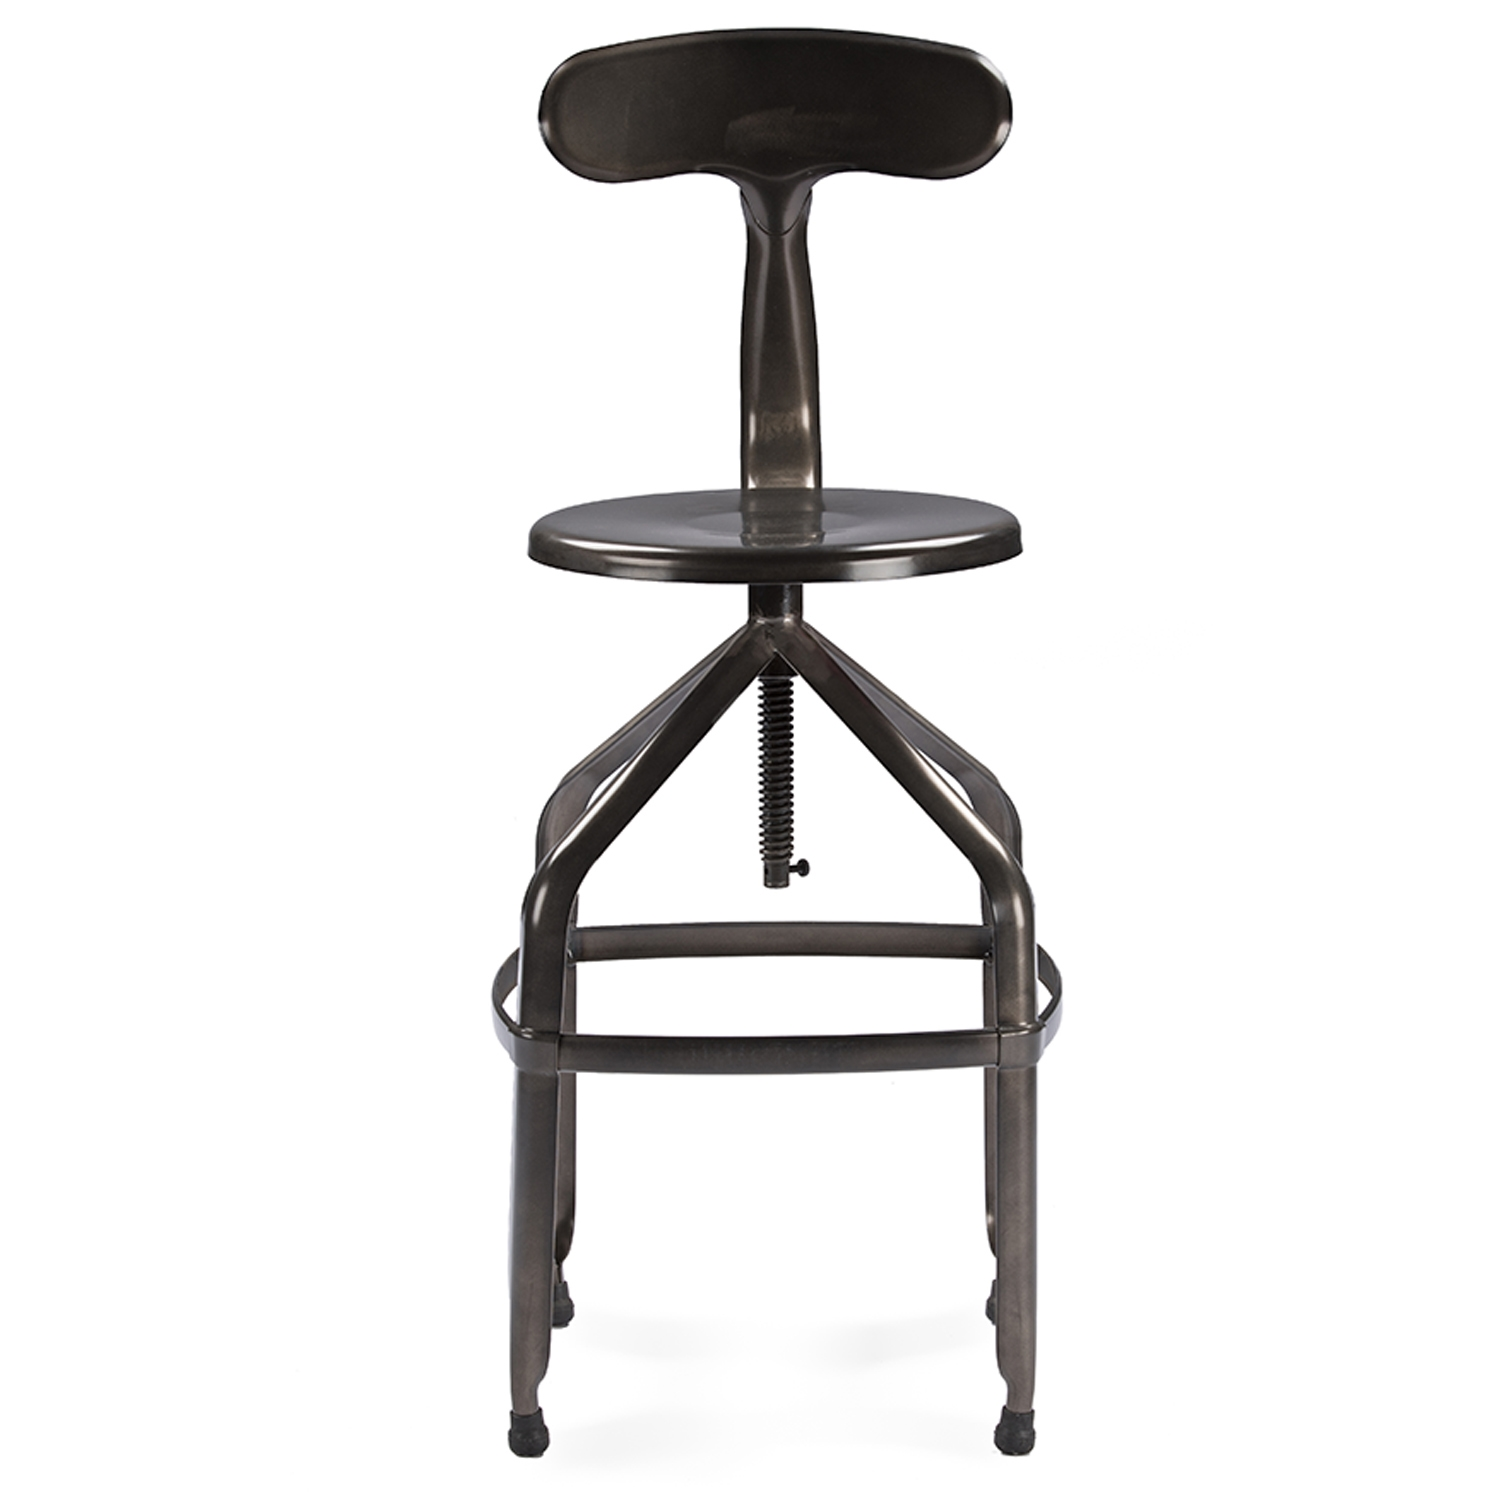 Baxton Studio Architectu0027s Industrial Bar Stool with Backrest in Gun Metal - BSOM-94137X- ...  sc 1 st  Baxton Studio Outlet & Baxton Studio Architectu0027s Industrial Bar Stool with Backrest in ... islam-shia.org